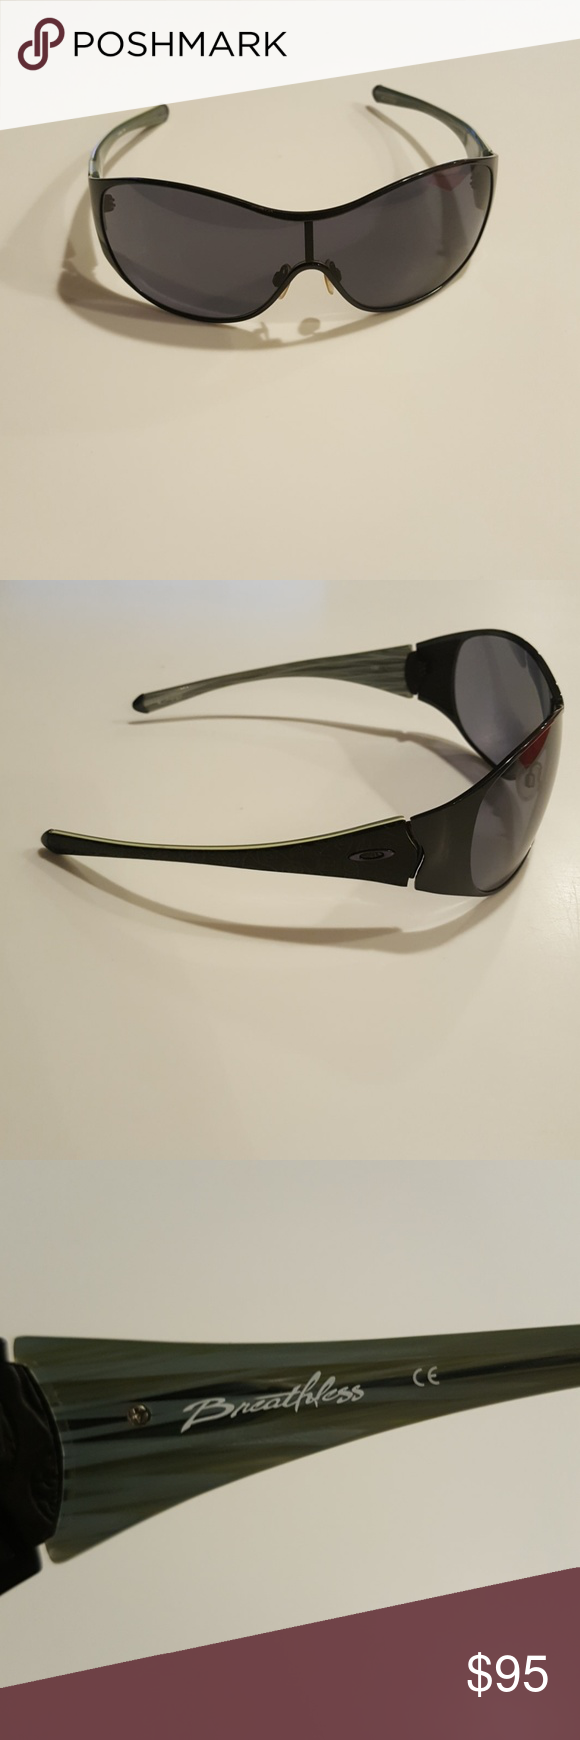 bbc17e55ac Oakley breathless sunglasses Excellent condition and still lots of love to  give! Oakley Accessories Sunglasses